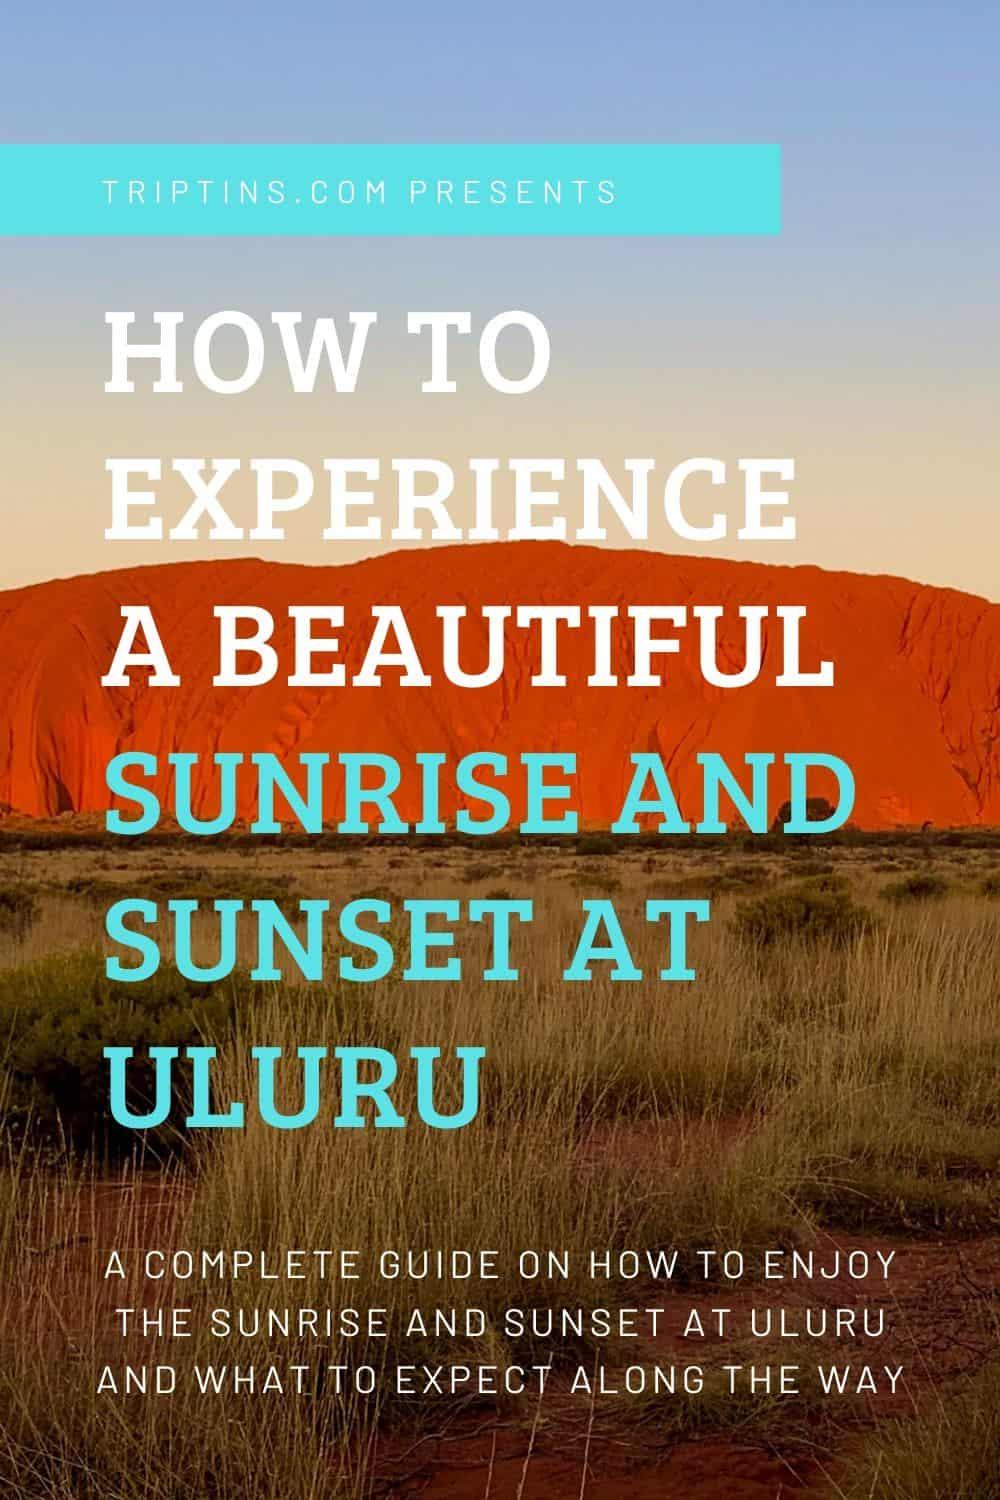 Uluru Sunset & Sunrise